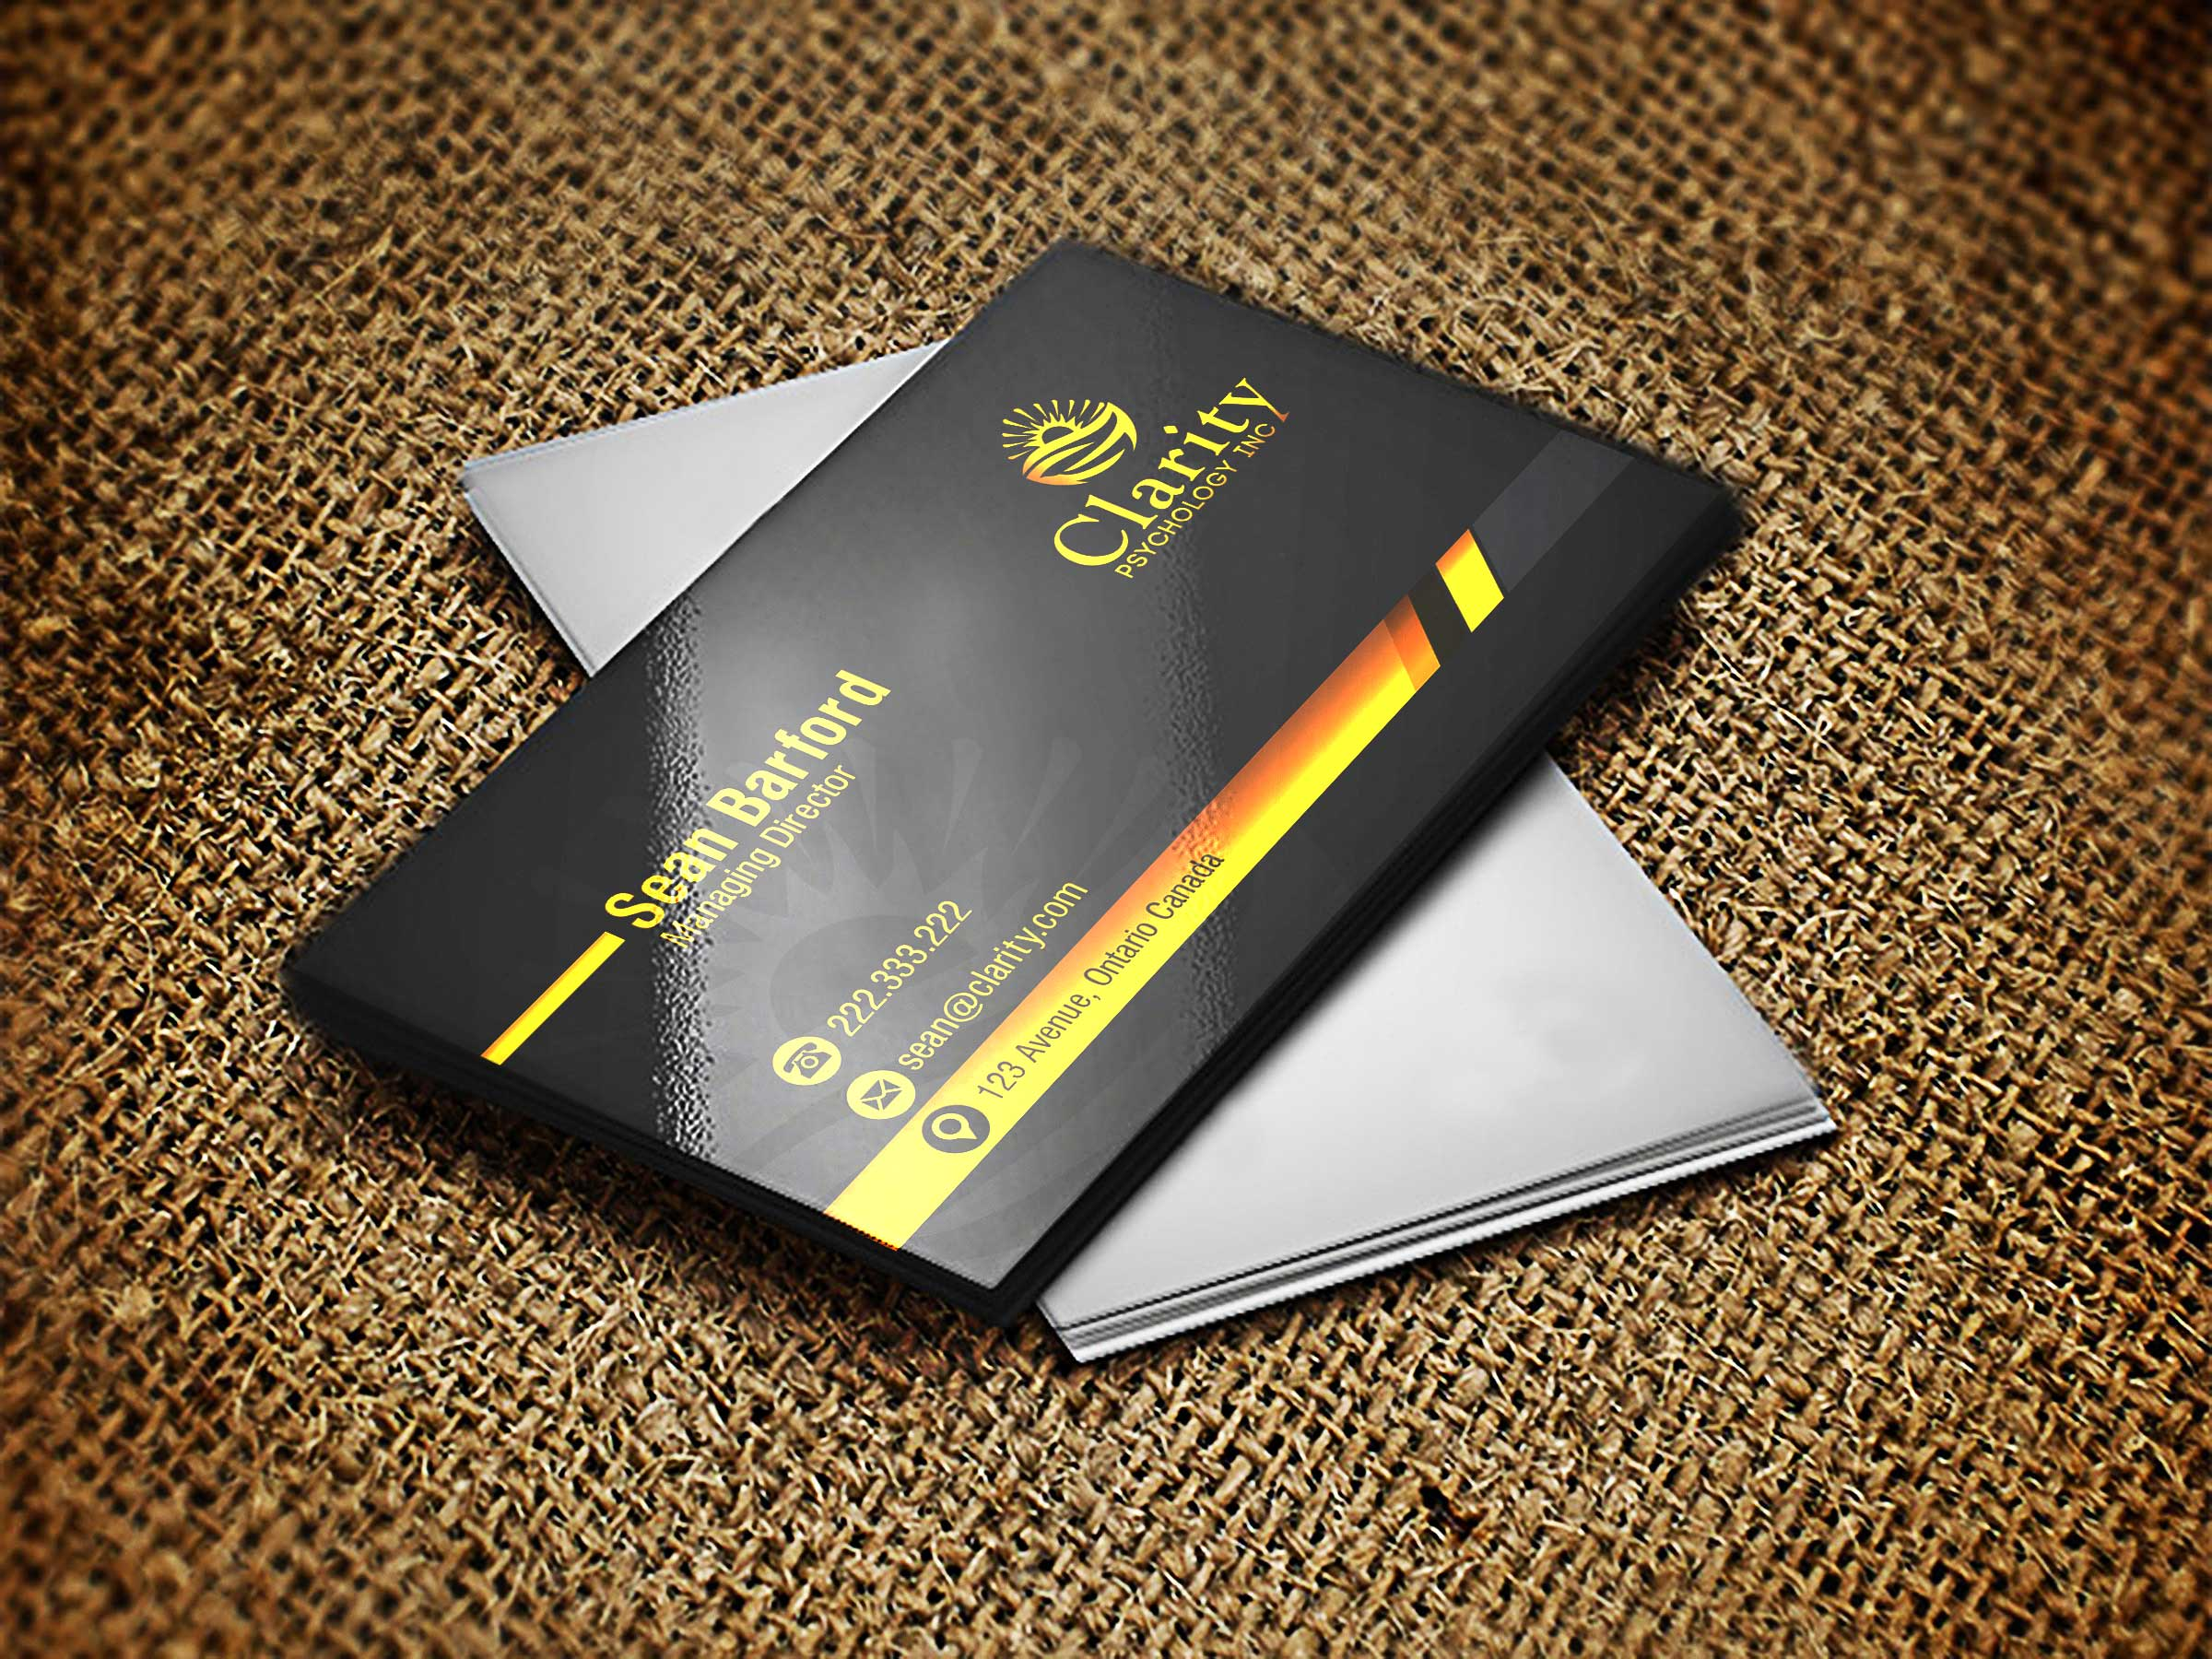 Business card design contests professional business card design business card design by lagalag entry no 7 in the business card design contest colourmoves